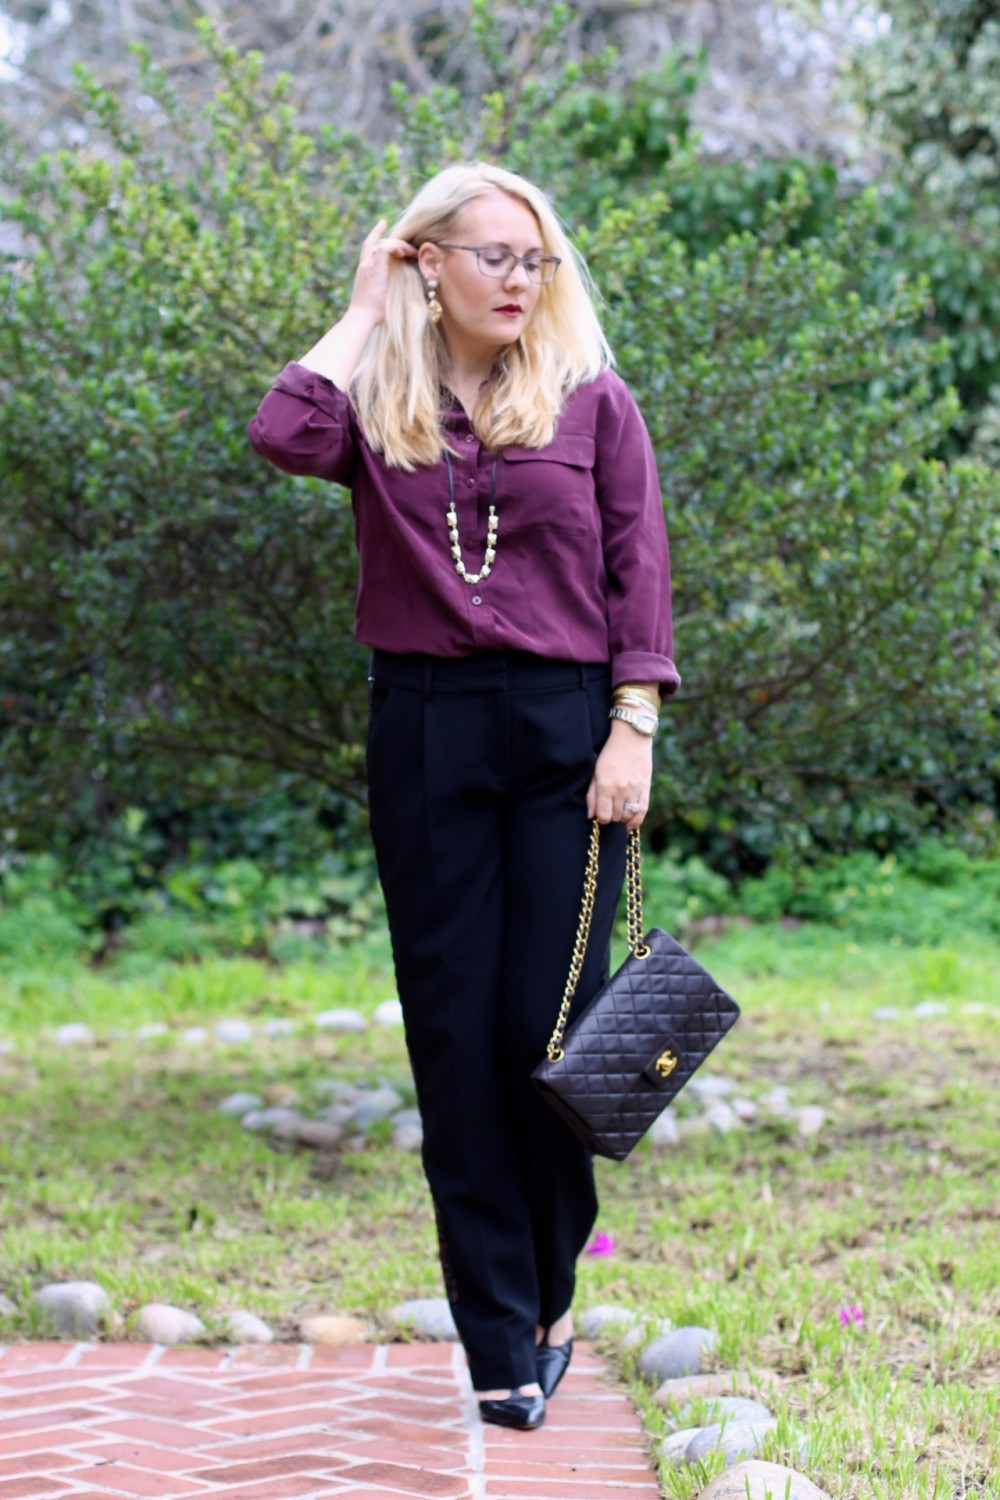 Sequin Tuxedo Trousers-Work Wear-Outfit Inspiration-Chanel Classic Flap Bag-Equipment Blouse-Nine West T-Strap Heels-Have Need Want 11